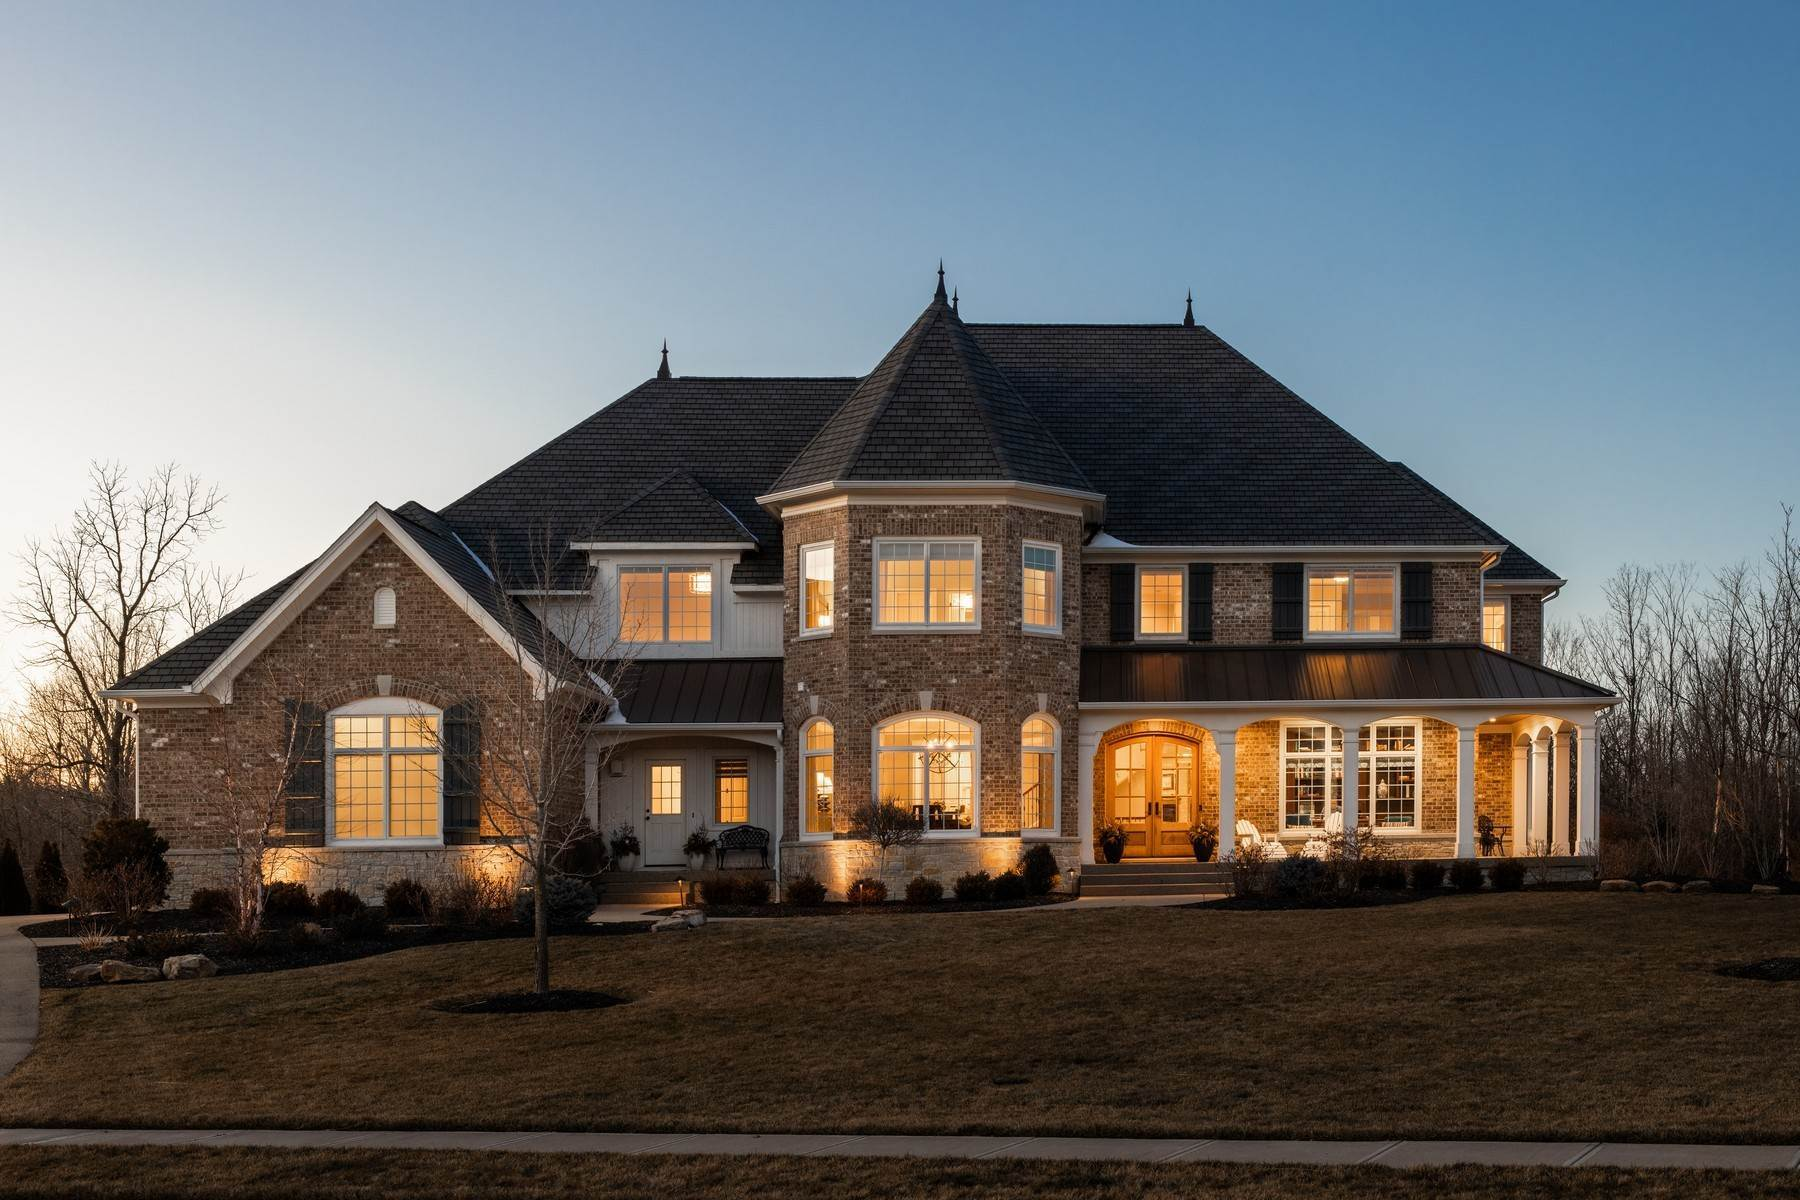 Single Family Homes for Sale at Stunning Estate in Shannon Springs 8380 Shannon Springs Drive Zionsville, Indiana 46077 United States